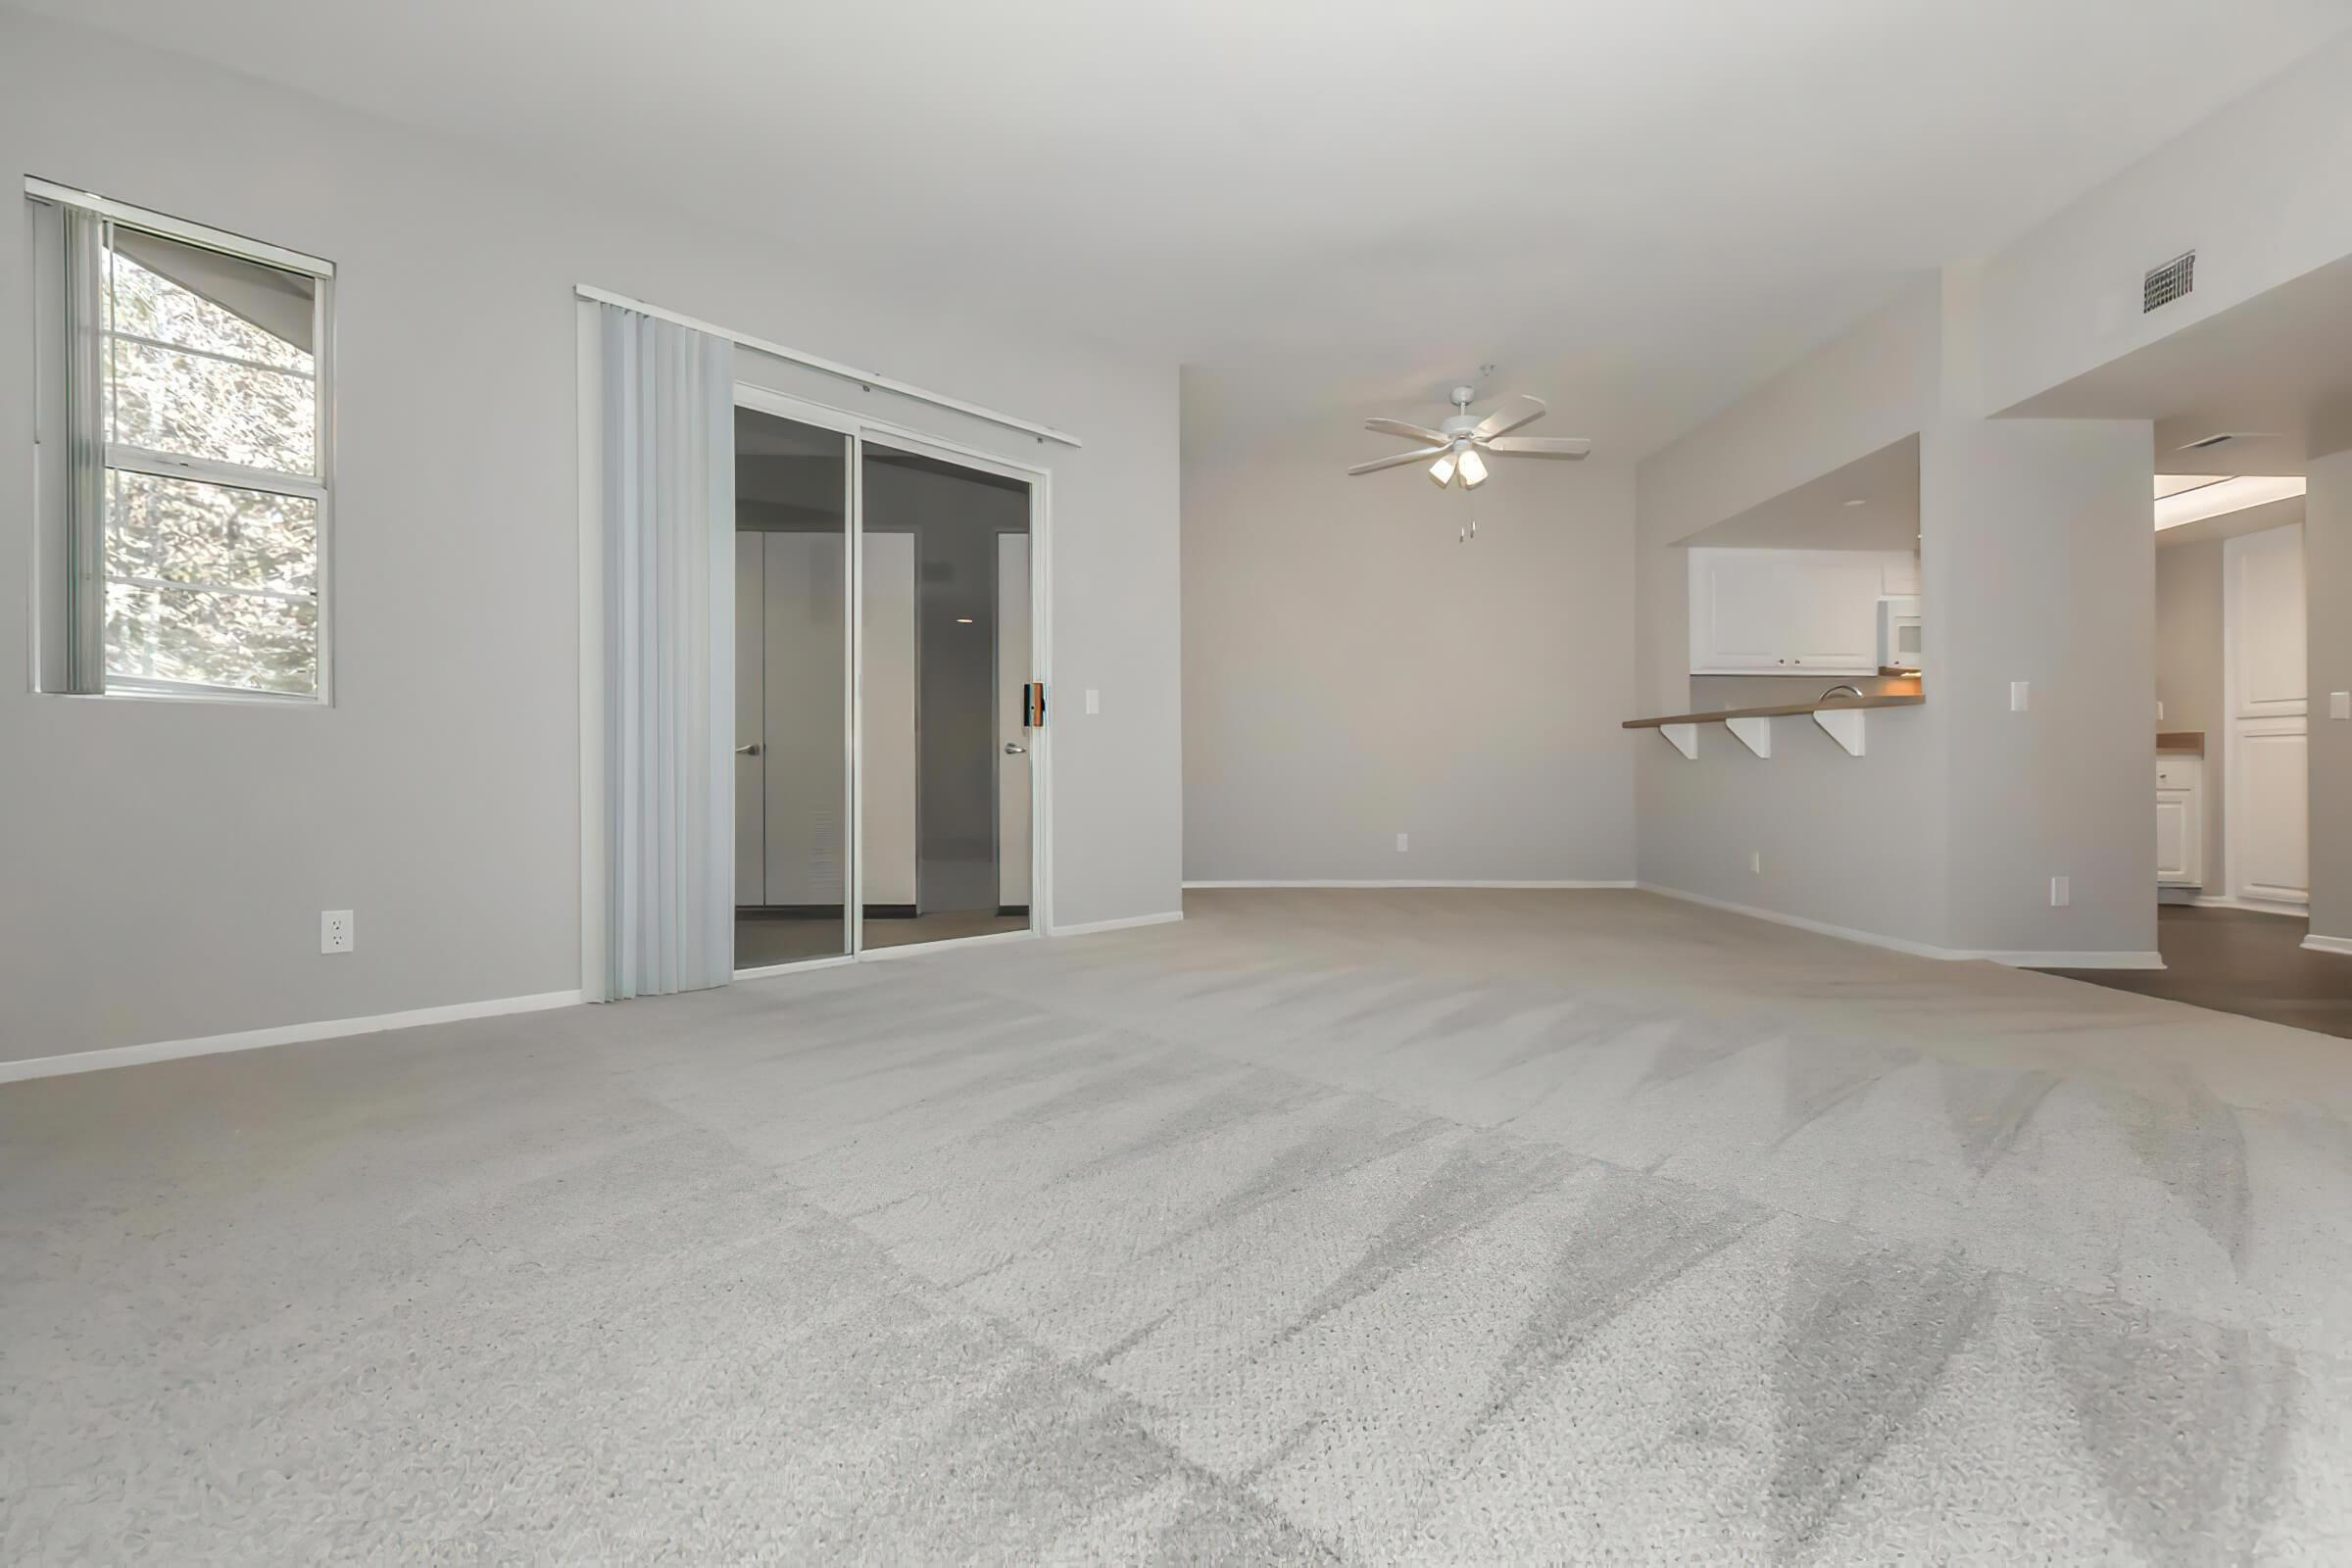 Vacant living room with carpet and sliding glass doors